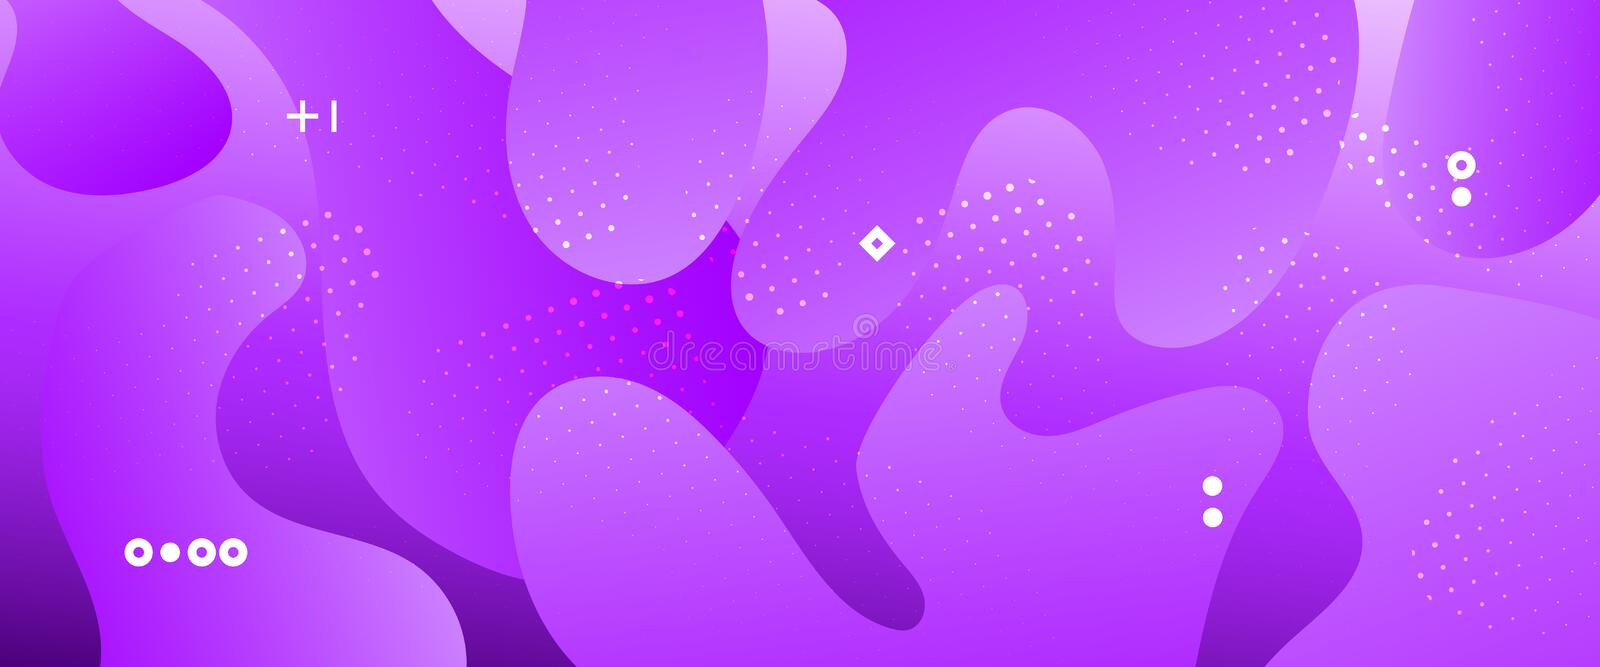 Abstract Flow Design. Neon Minimal Brochure. Dotted Graphic Wallpaper. Futuristic Concept. Abstract Wave Shapes. Gradient Poster. Light Vector Illustration royalty free illustration